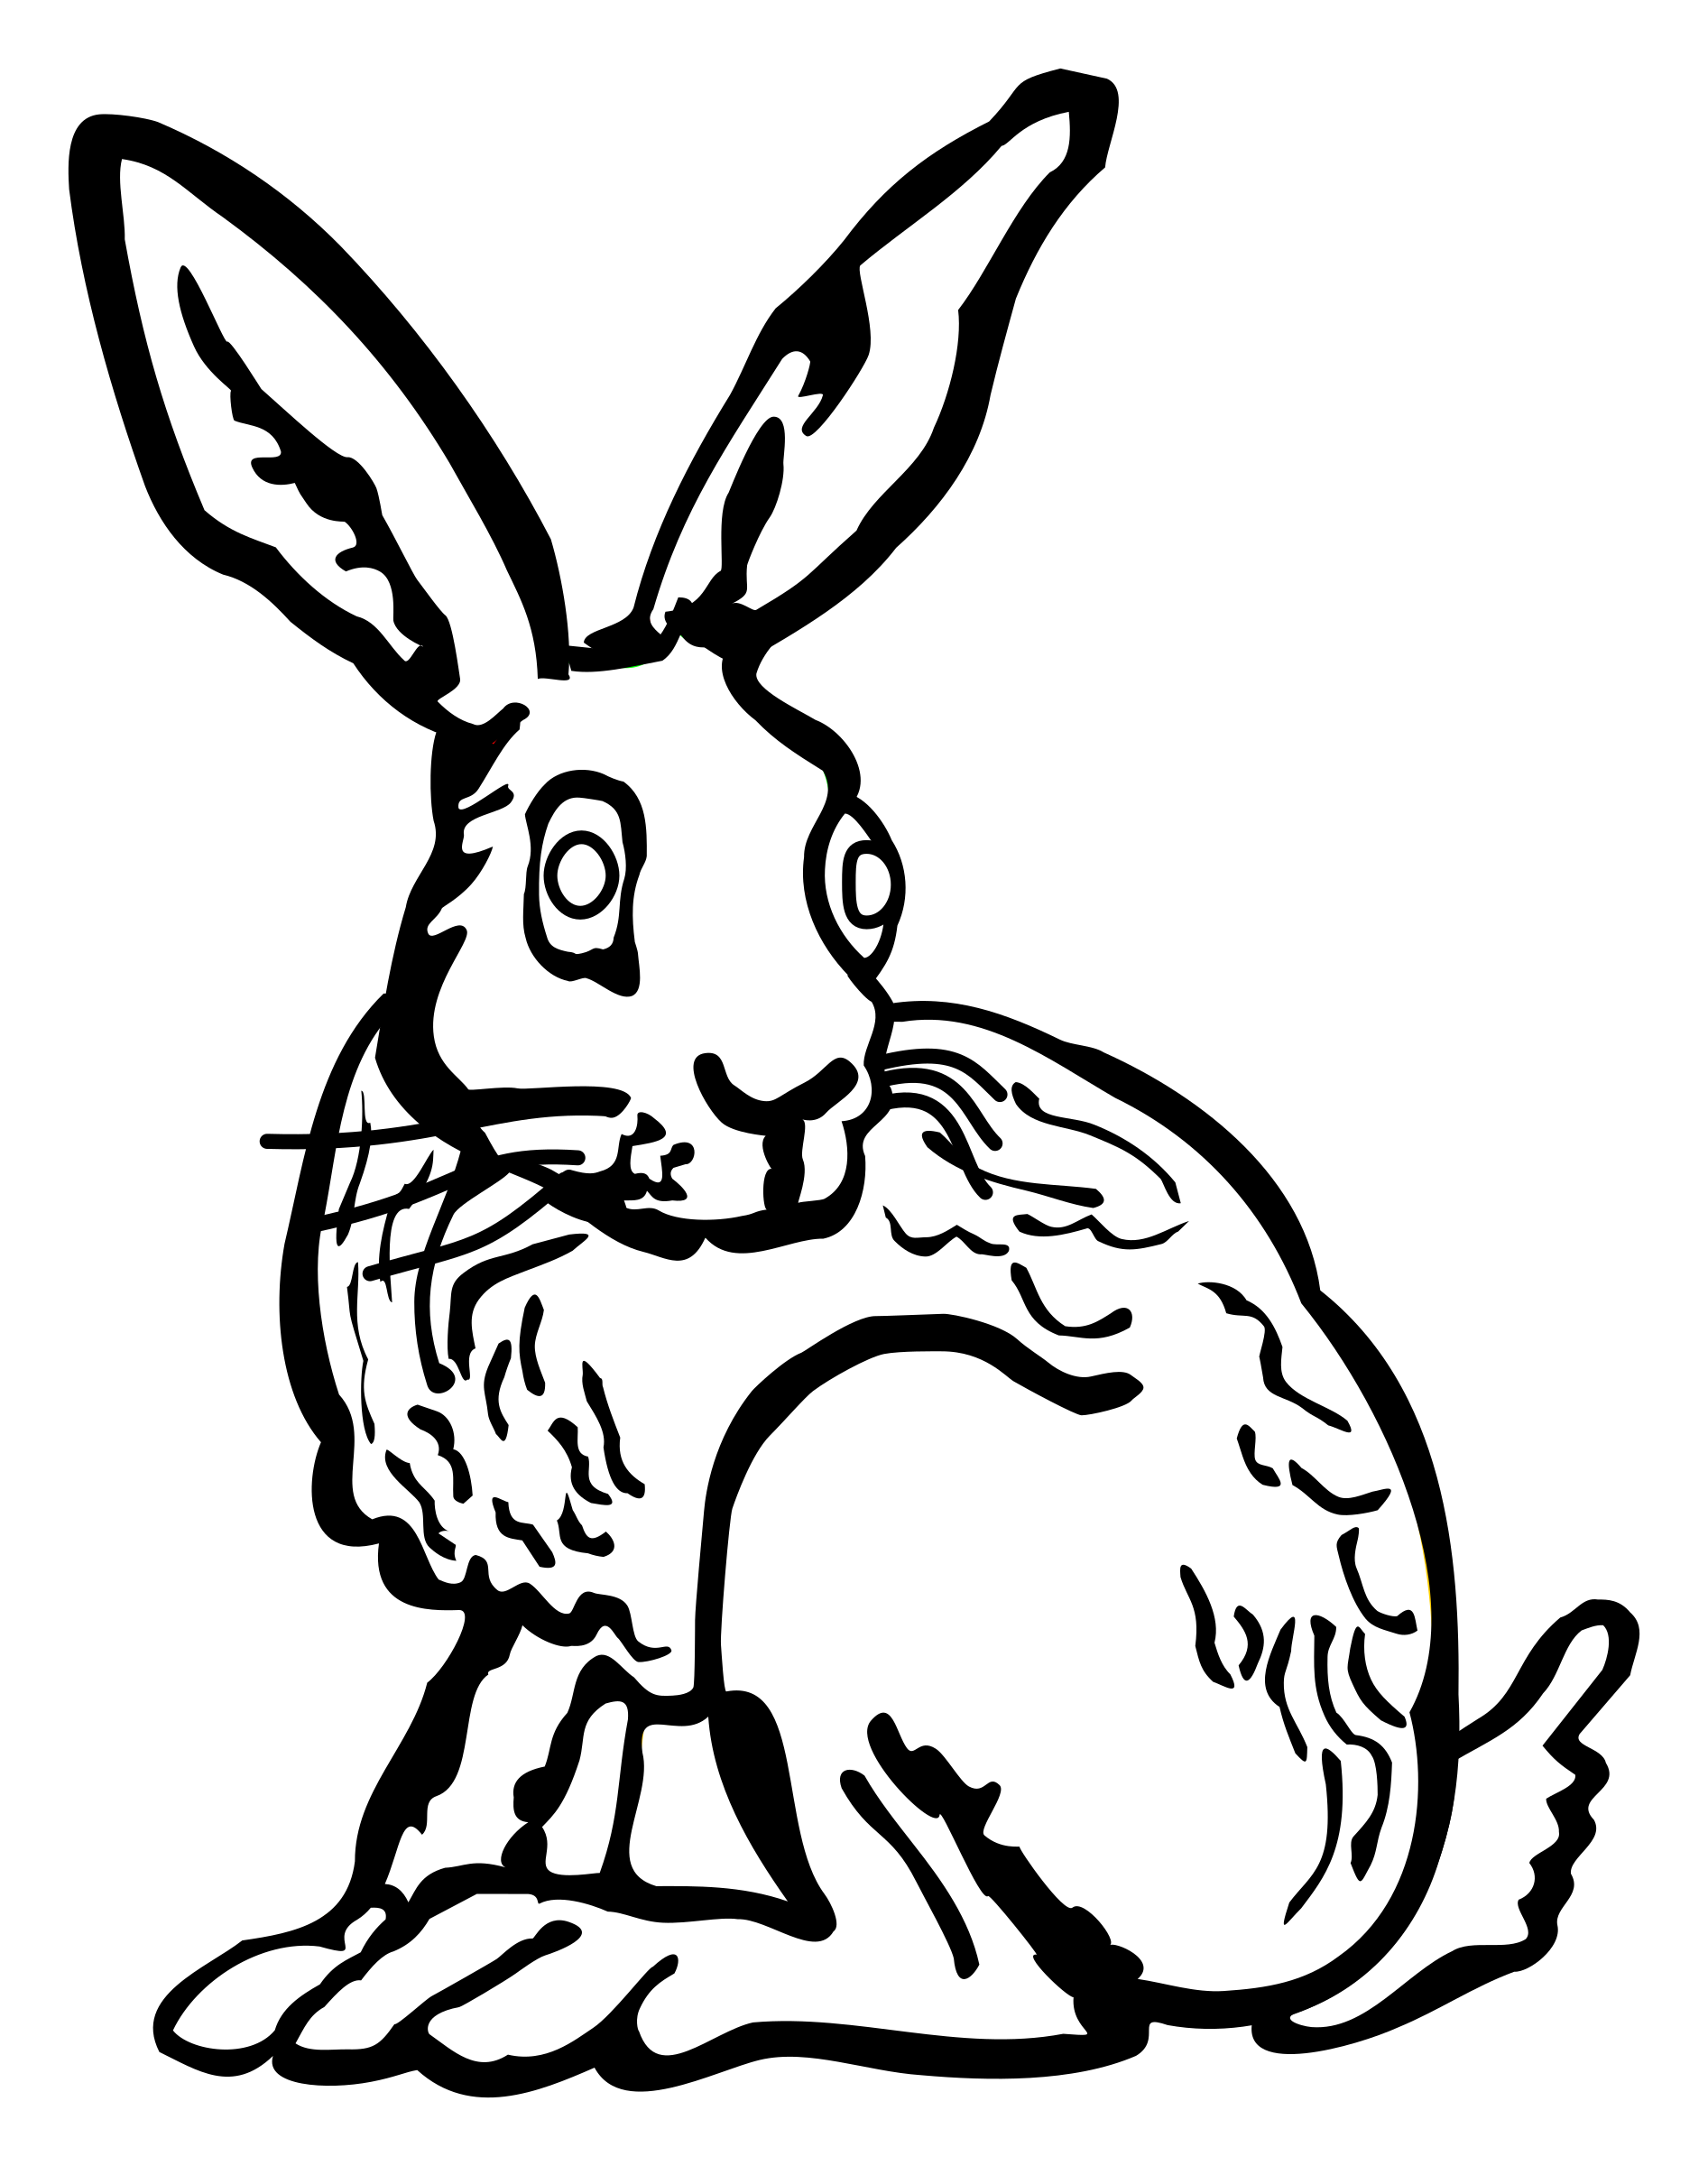 hare - lineart by frankes